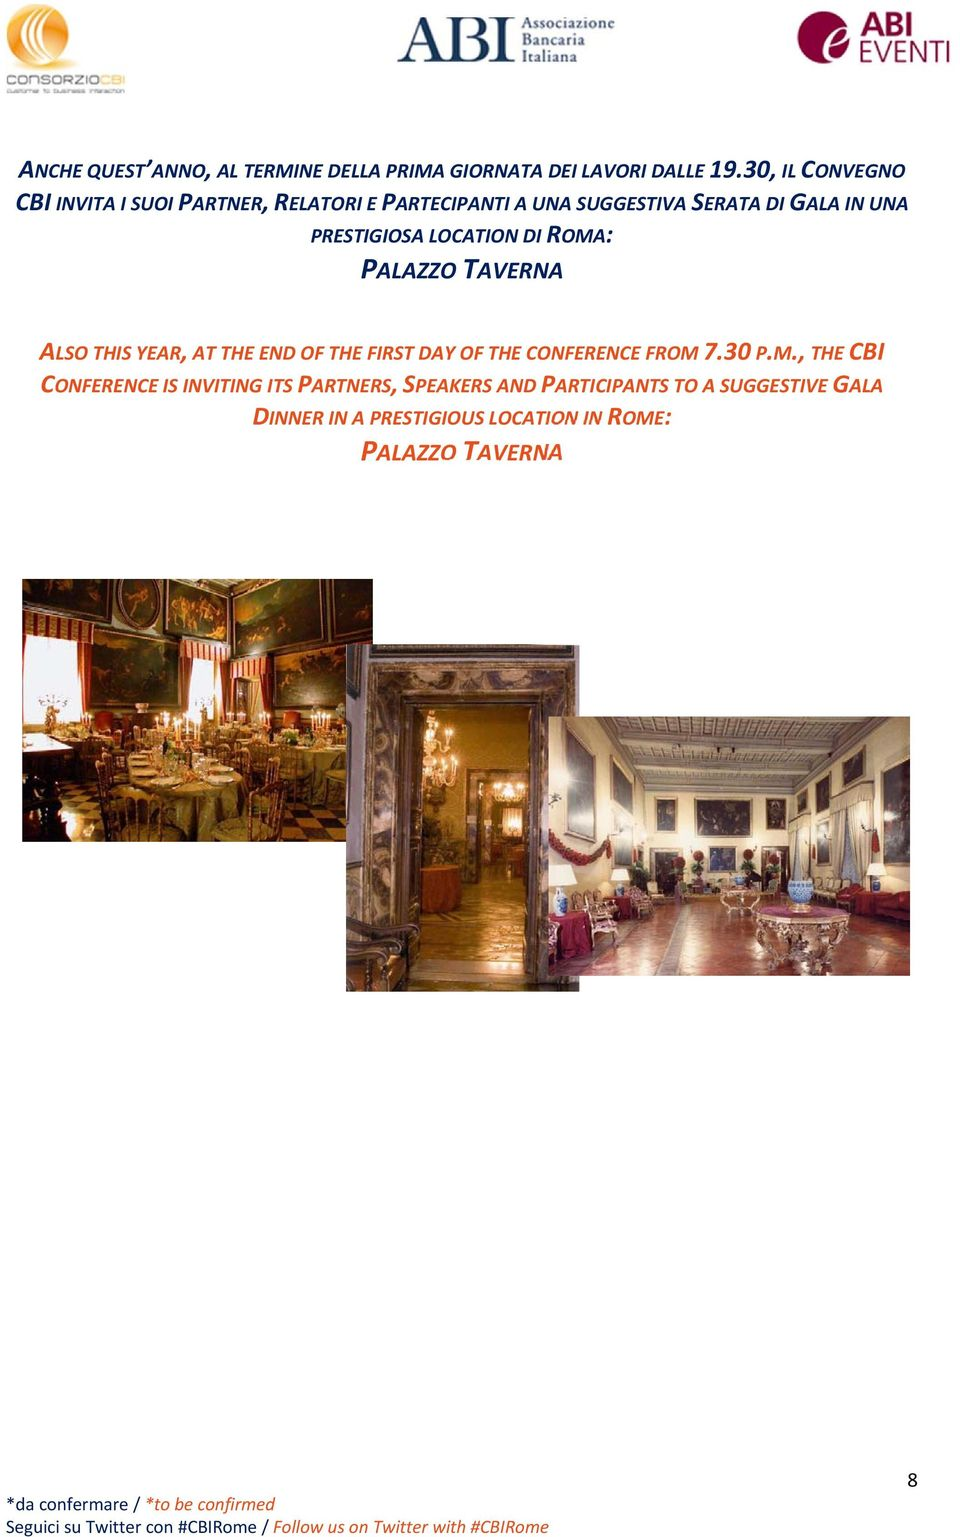 PRESTIGIOSA LOCATION DI ROMA: PALAZZO TAVERNA ALSO THIS YEAR, AT THE END OF THE FIRST DAY OF THE CONFERENCE FROM